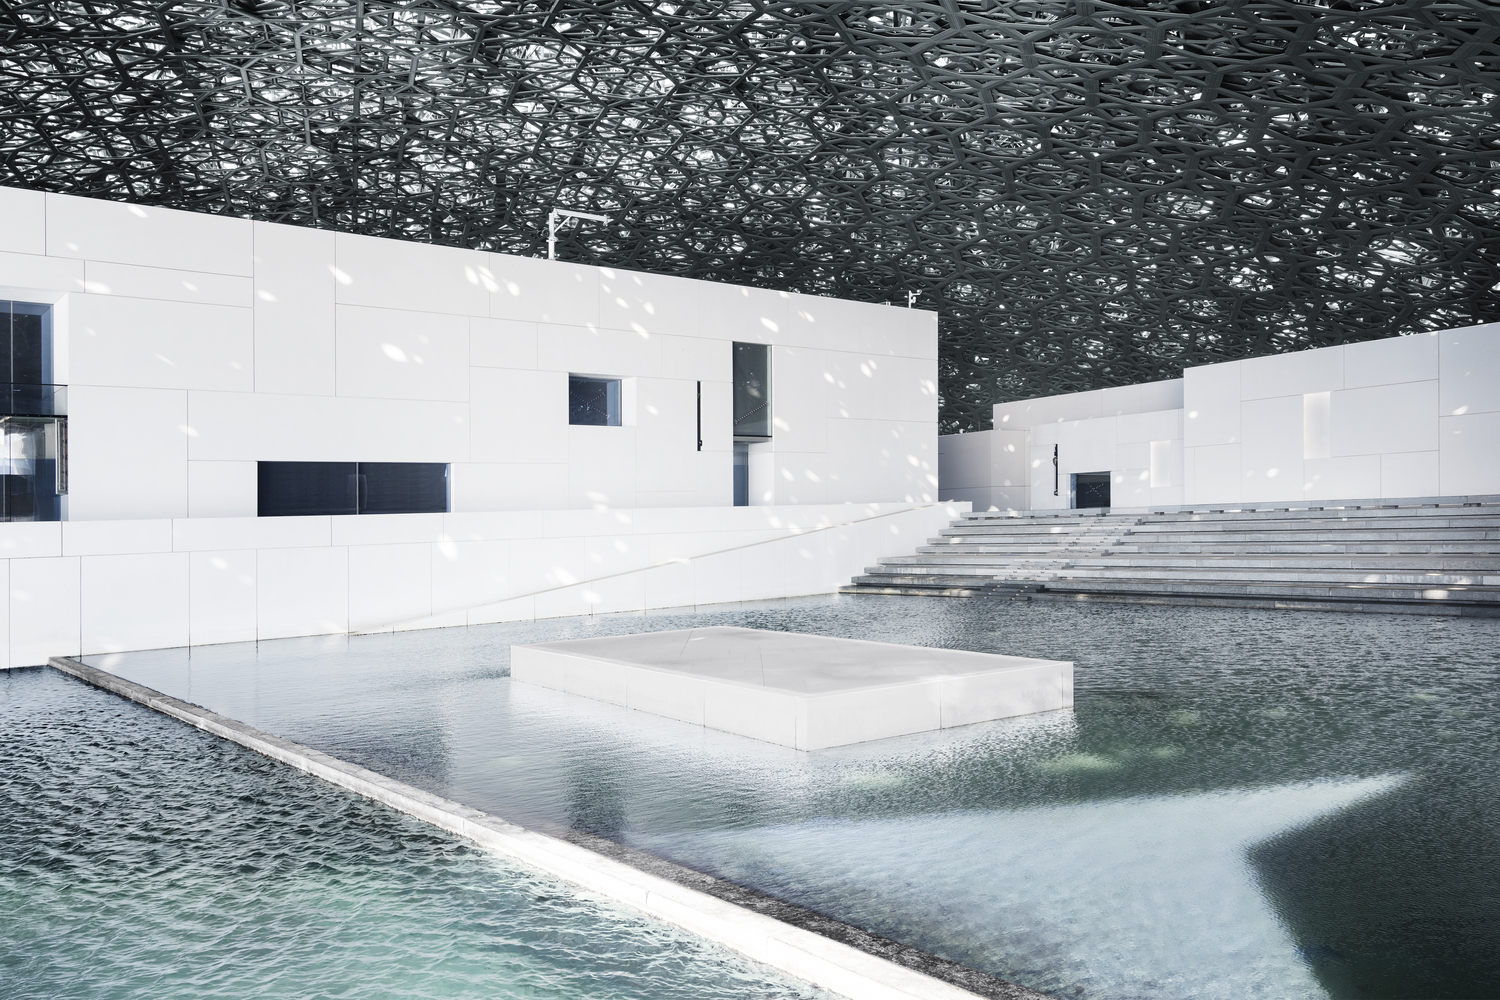 3._Louvre_Abu_Dhabi._Photo_Courtesy_Mohamed_Somji